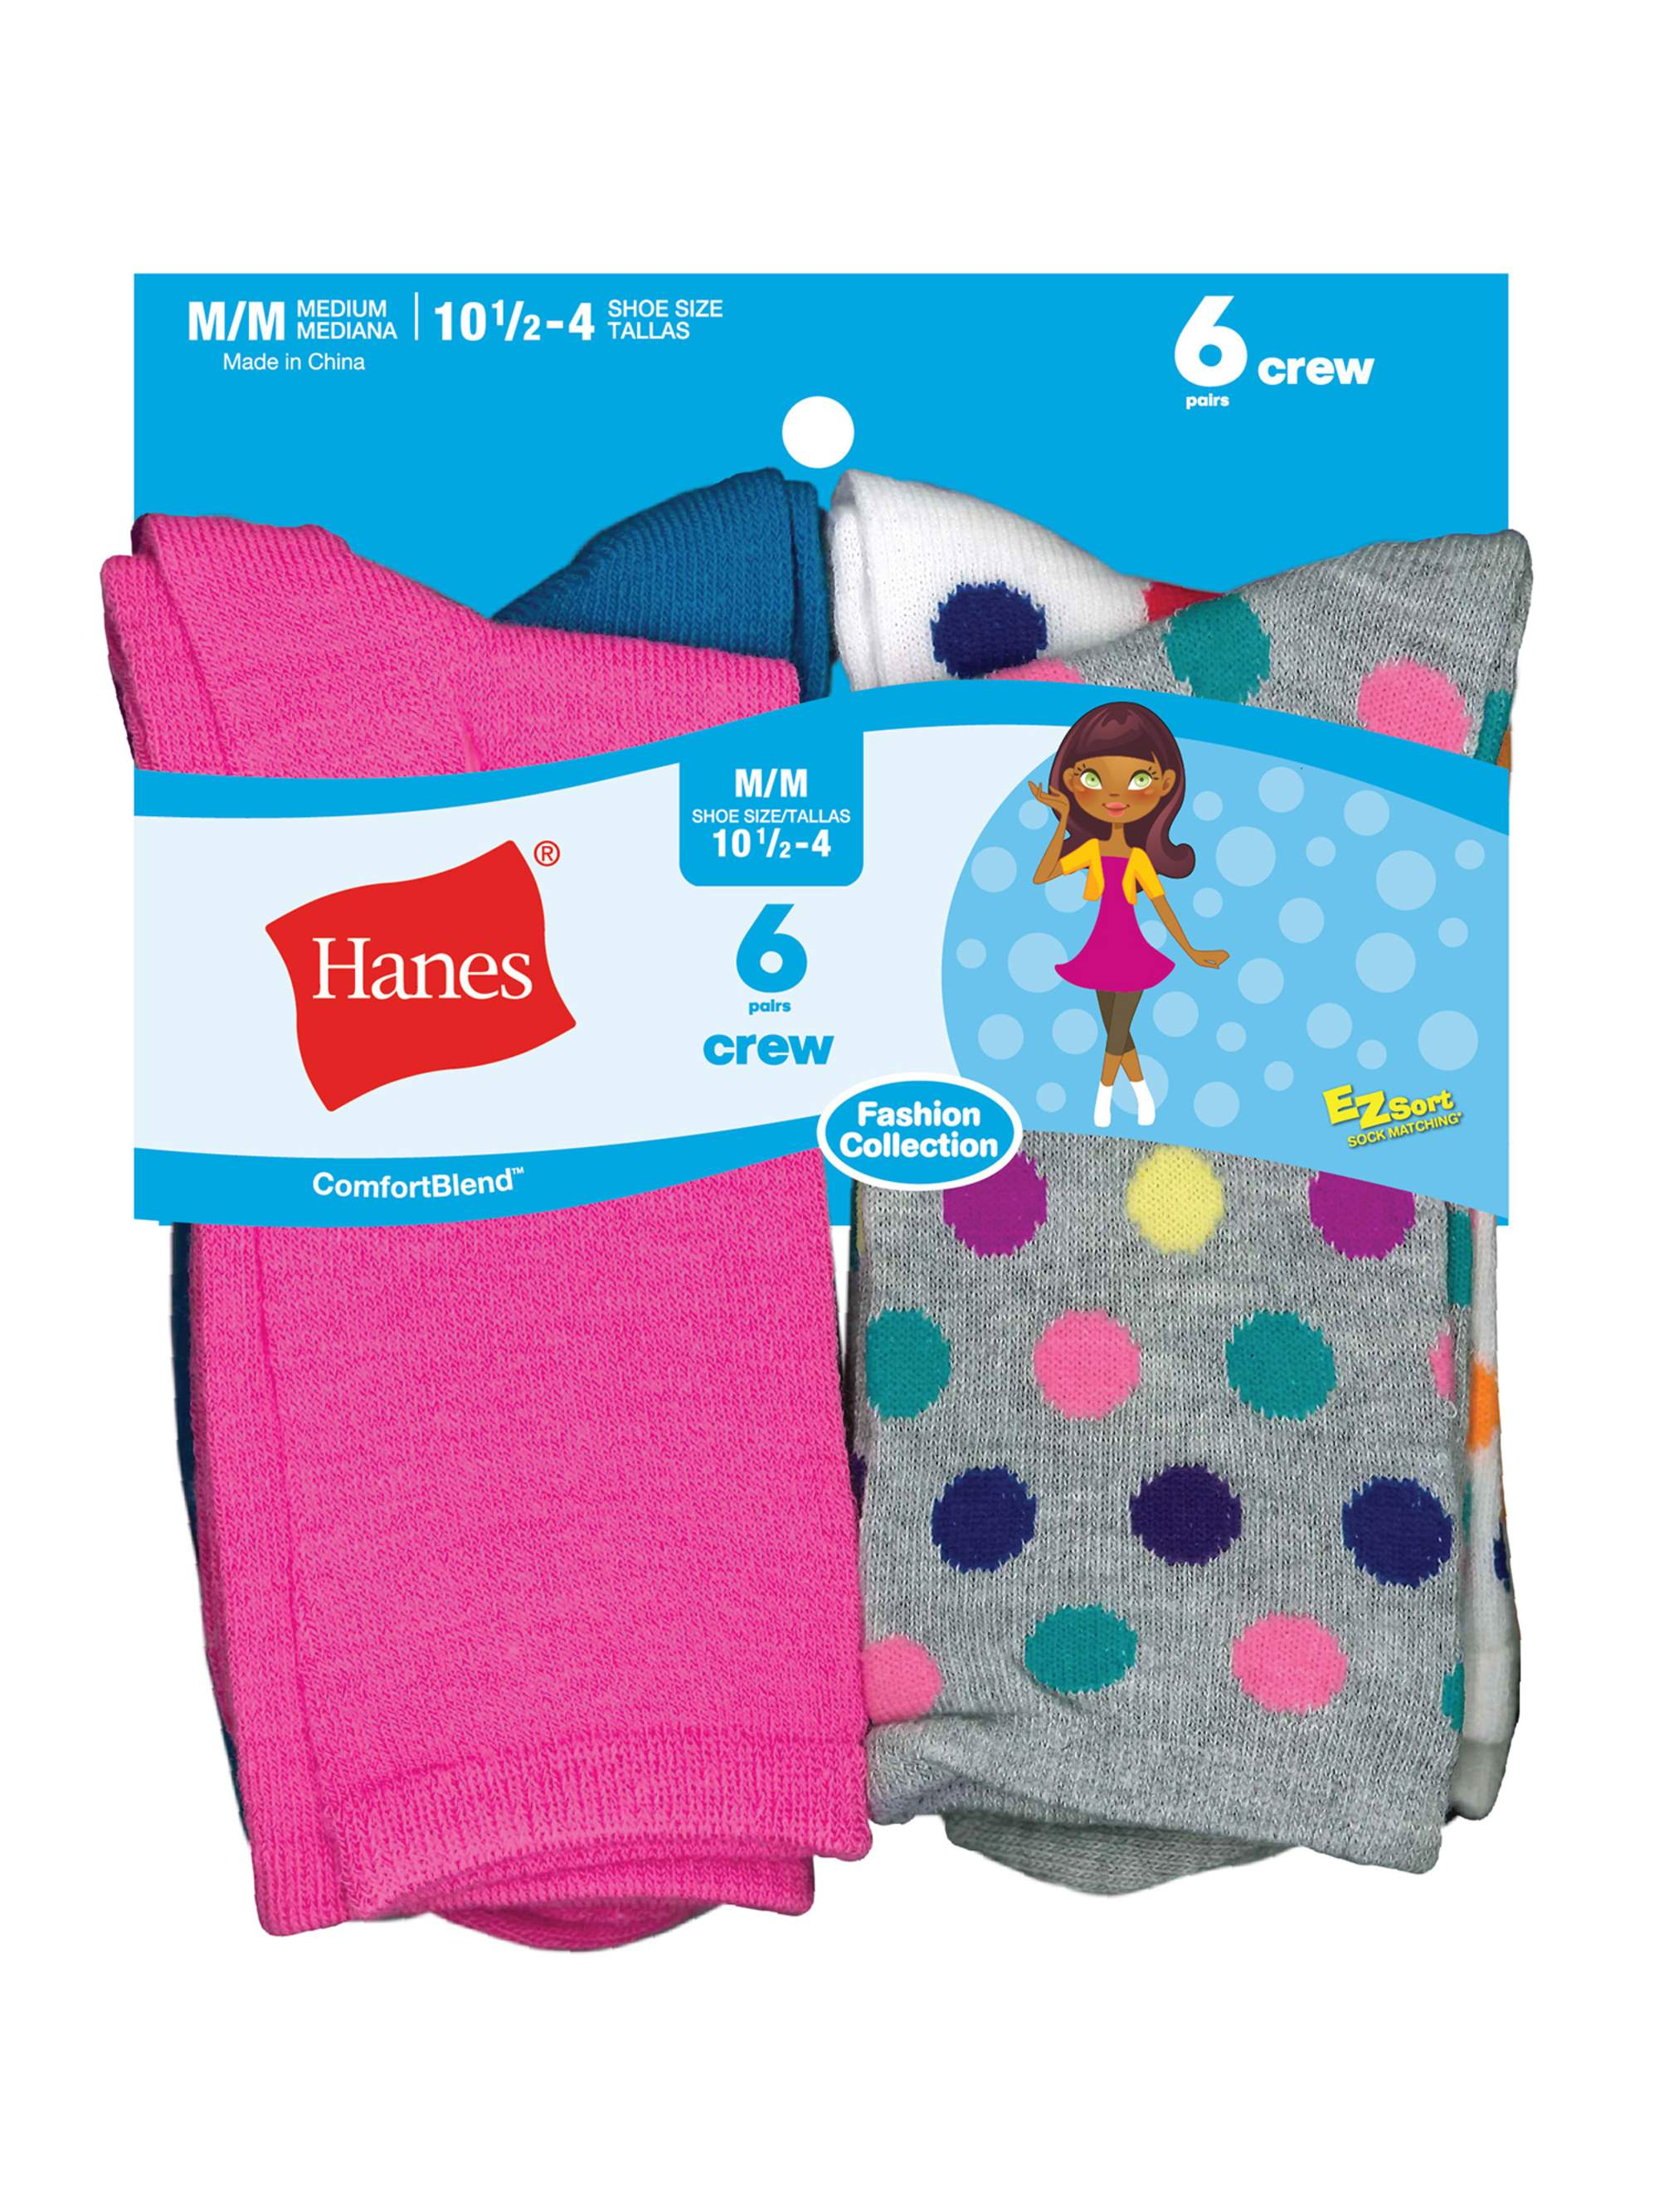 Hanes Girls' Crew Socks, 6 Pairs (Big Girls)